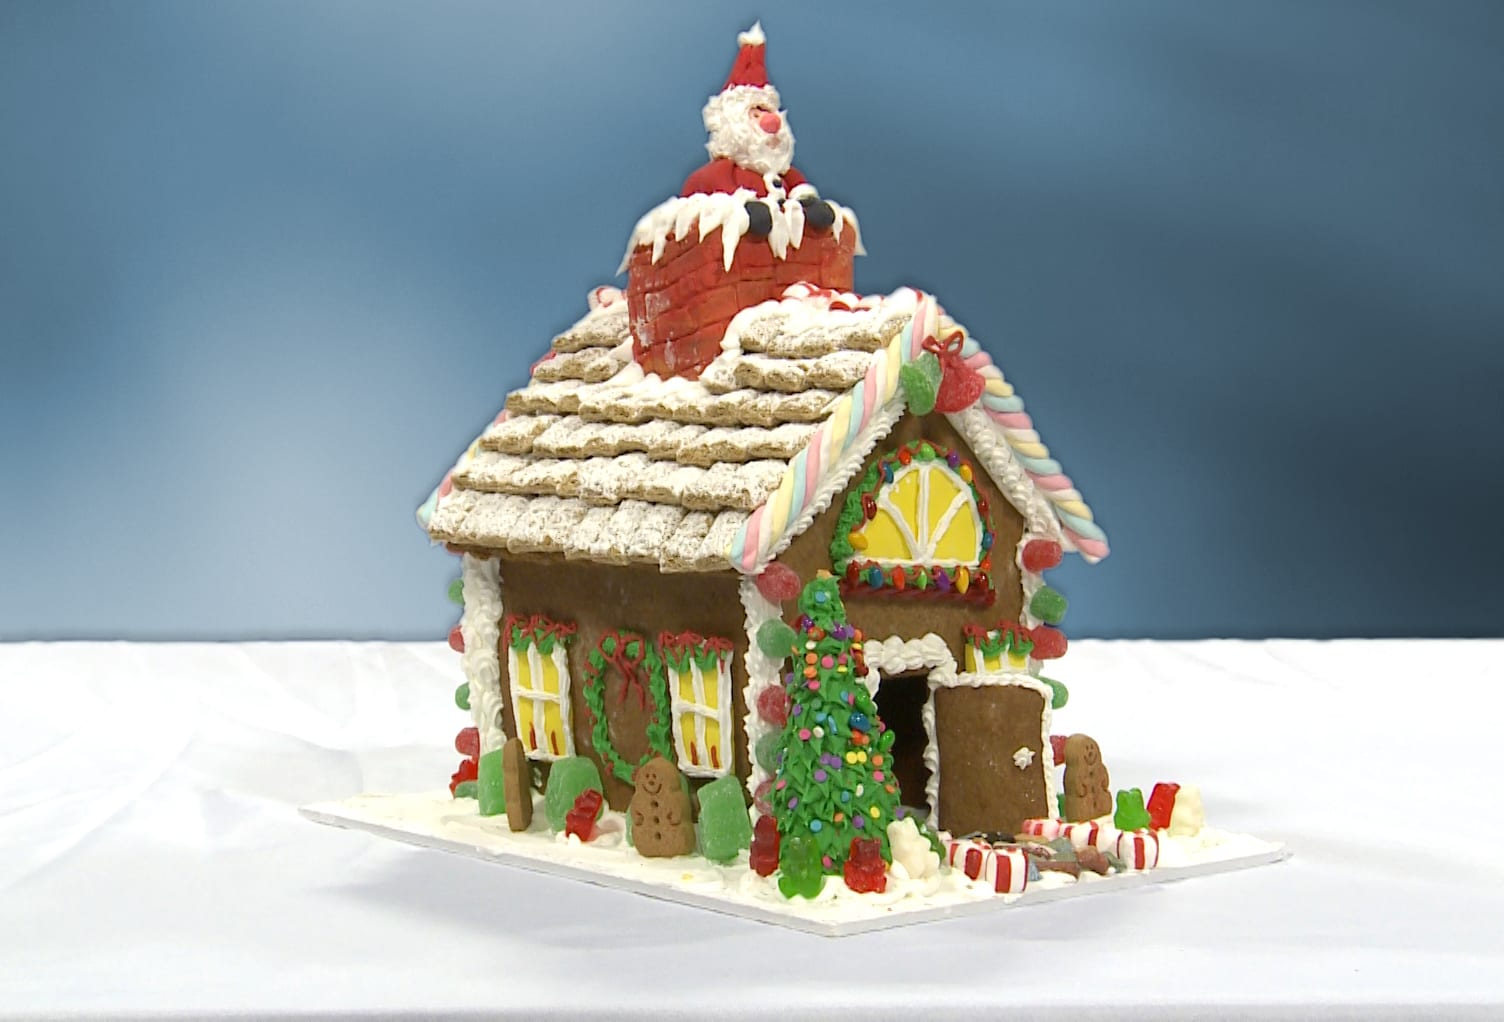 GINGERBREAD HOUSE & 2 CLASS TICKETS <br/> Donated by: JANET EVERS <br/> Valued at: $205